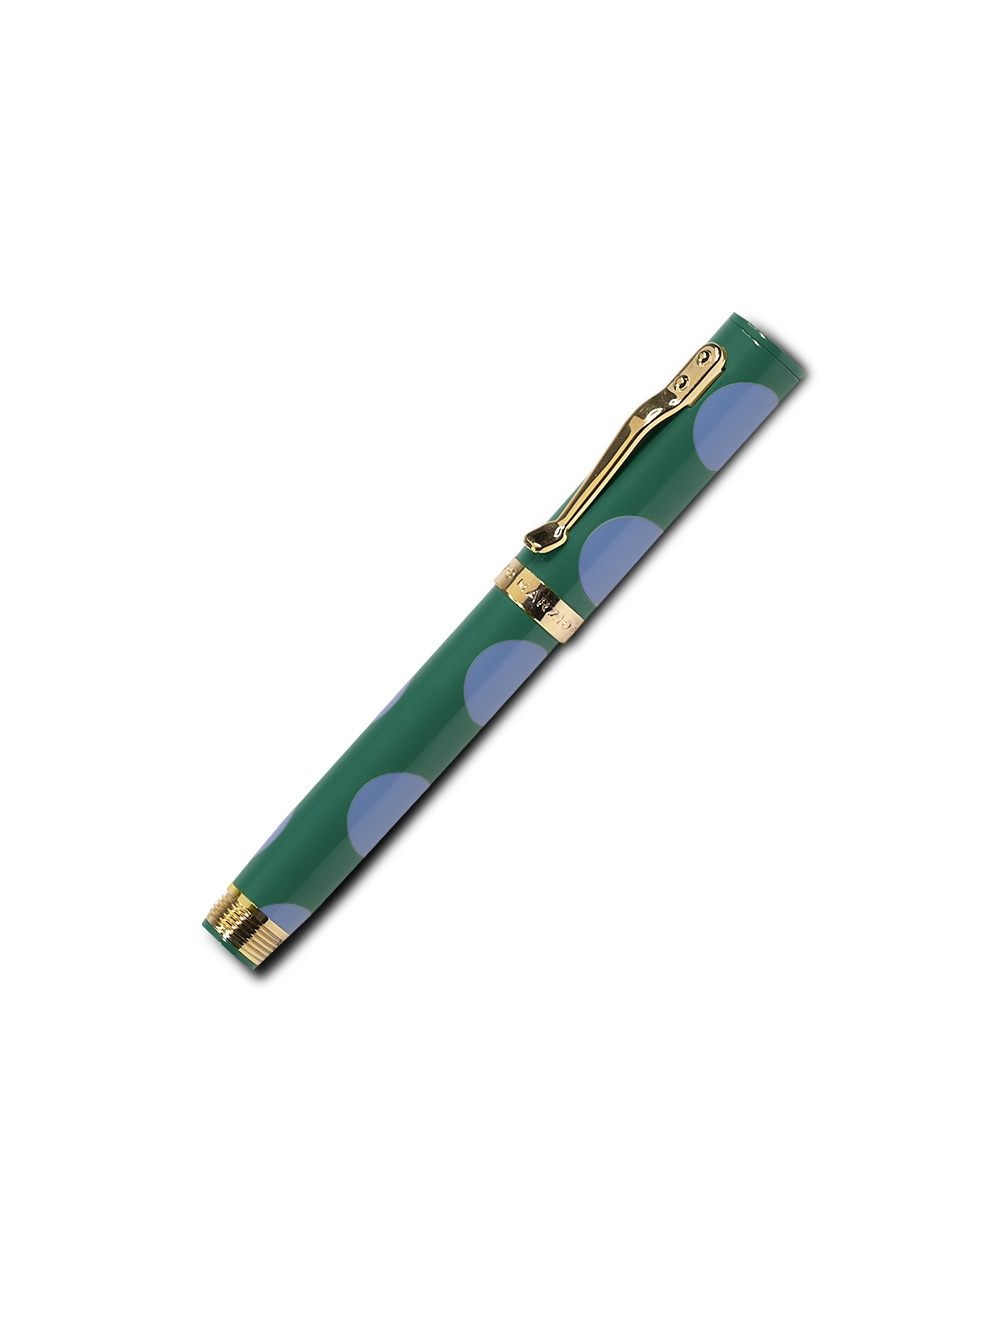 Les Pois Fountain Pen - Spring Green